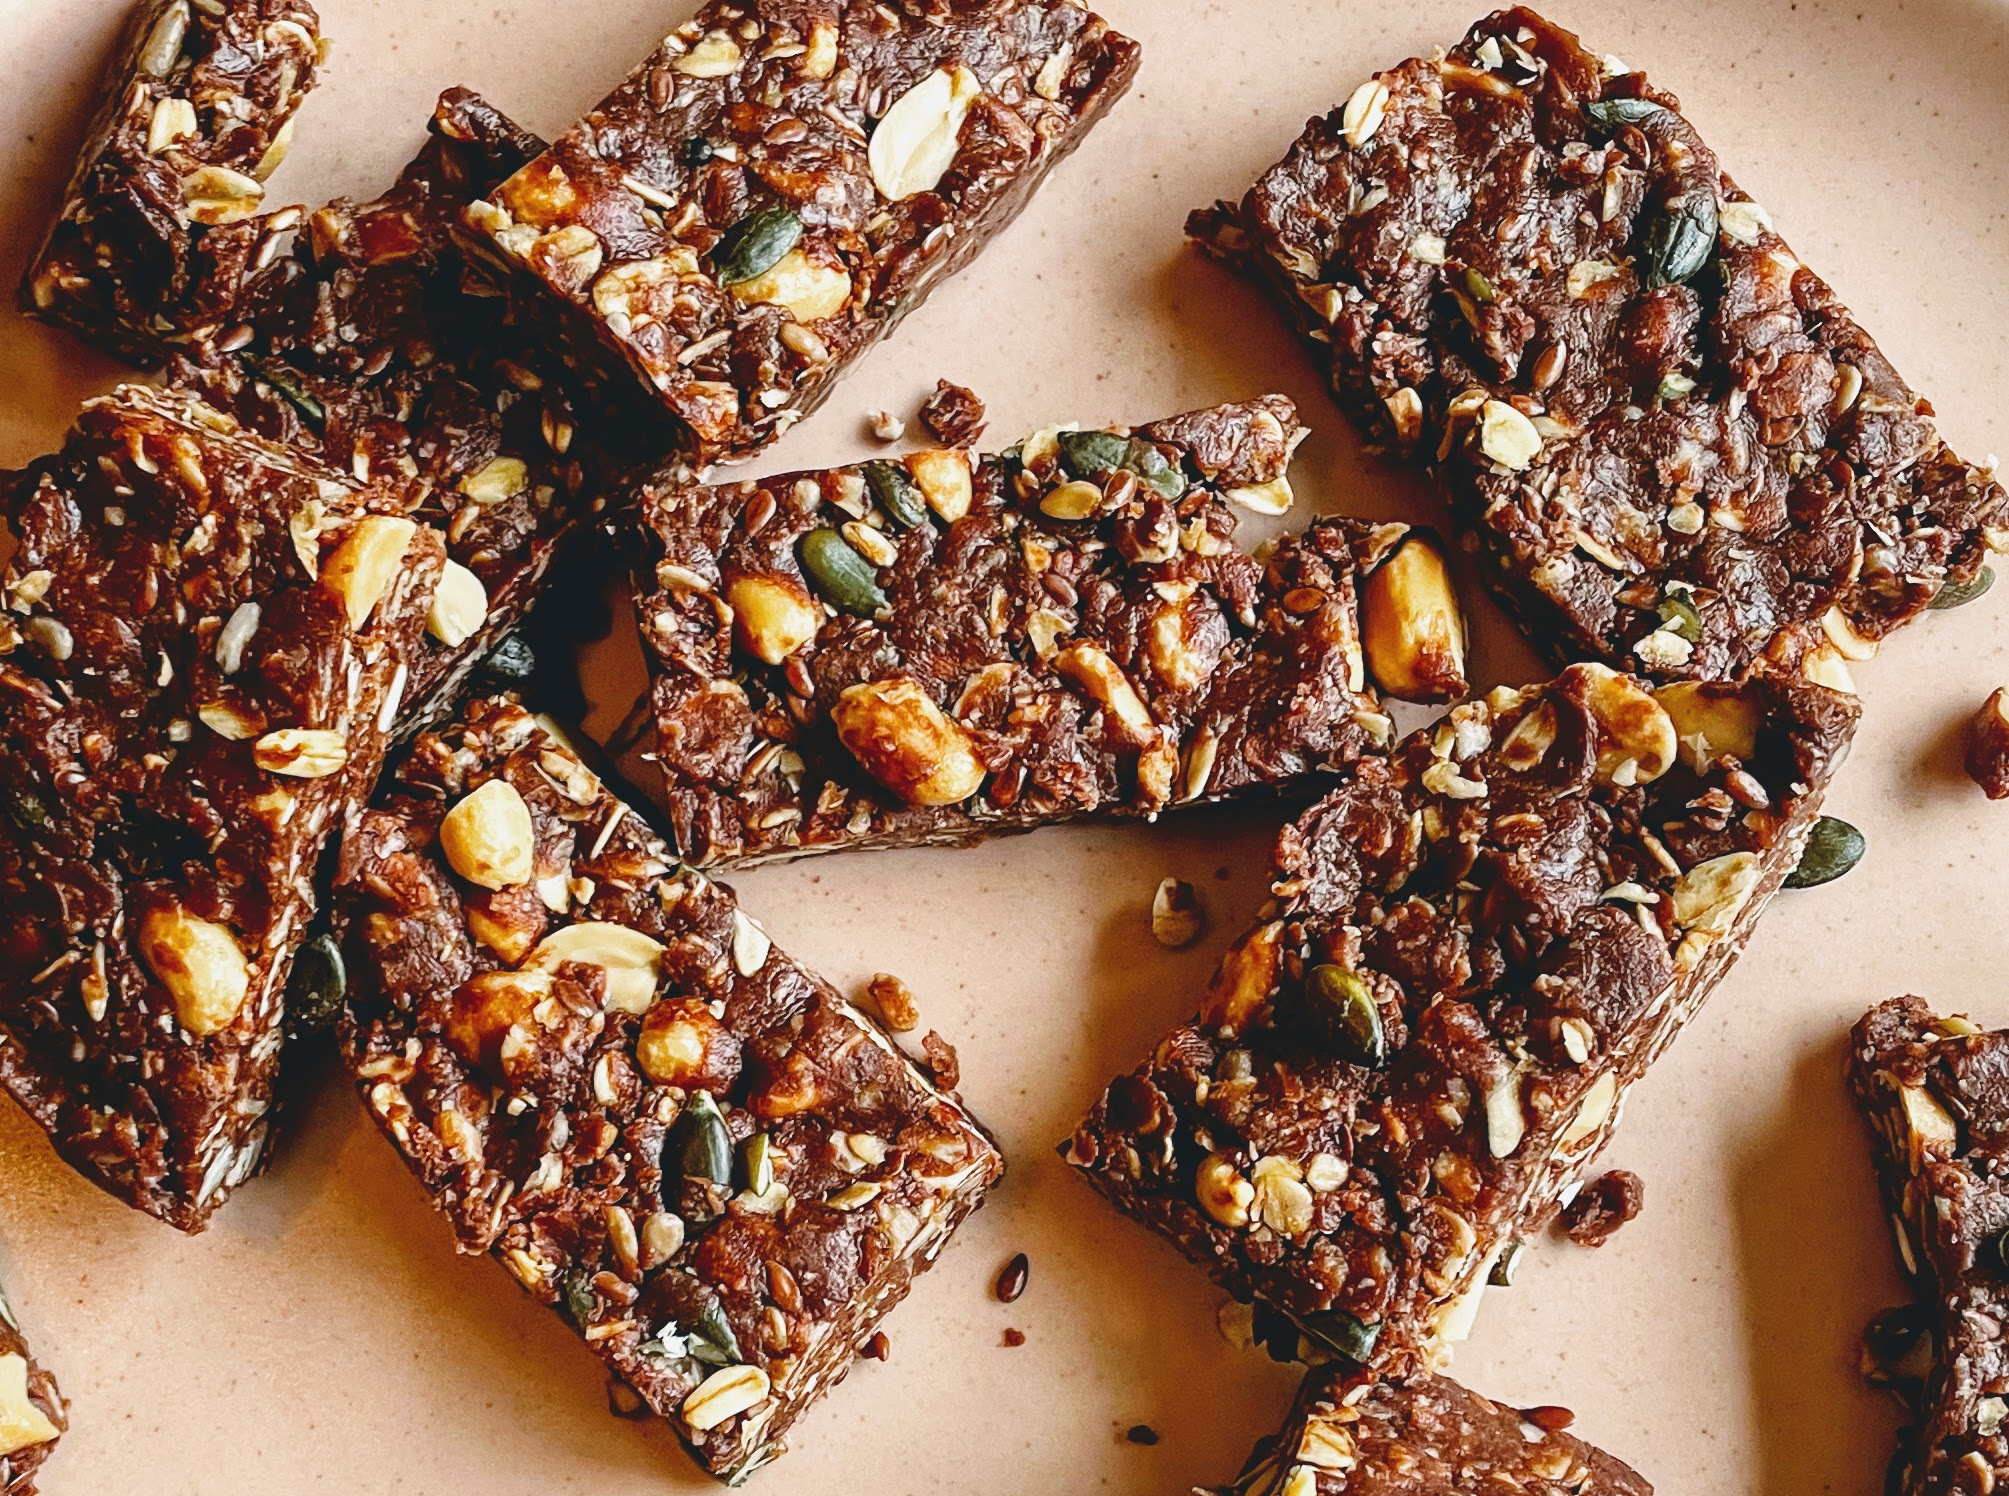 Chocolate and peanut protein bars arranged haphazardly on a pink plate. The bars are a dark chocolatey brown, with a messy mosaic of oats, peanuts, and mixed seeds peeking through.